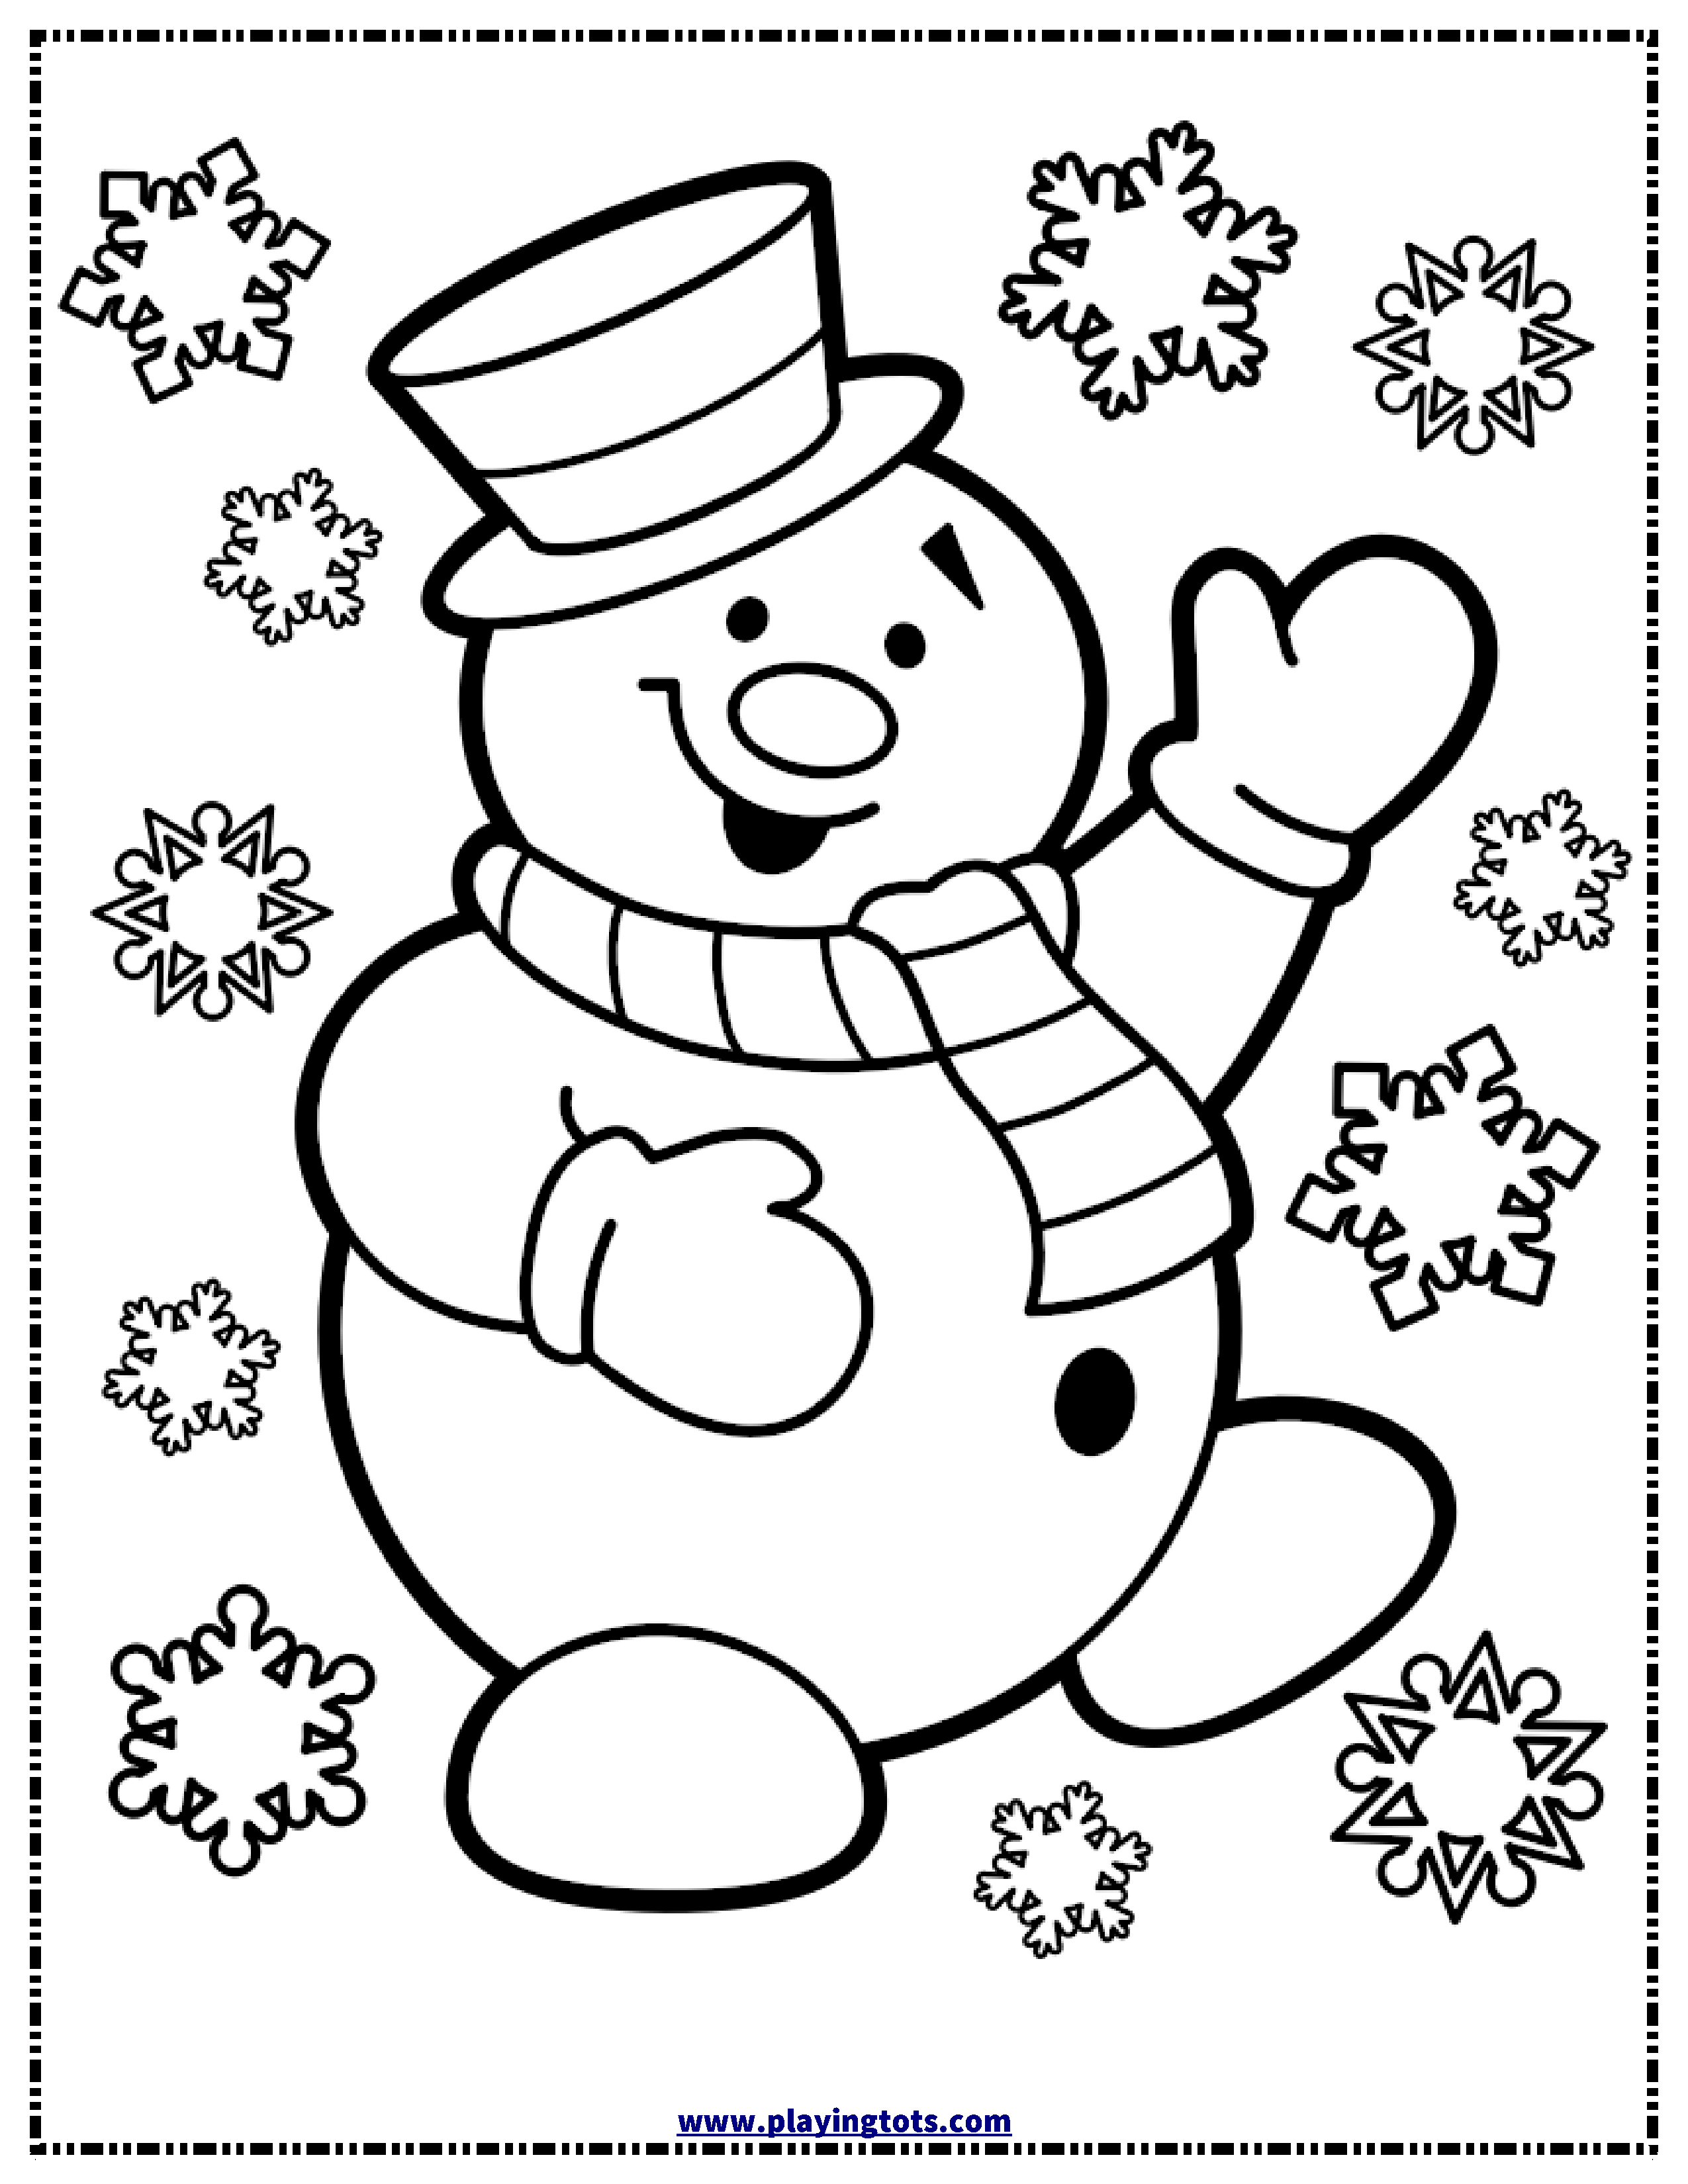 snowman coloring page | Free Printable for Coloring Activities ...